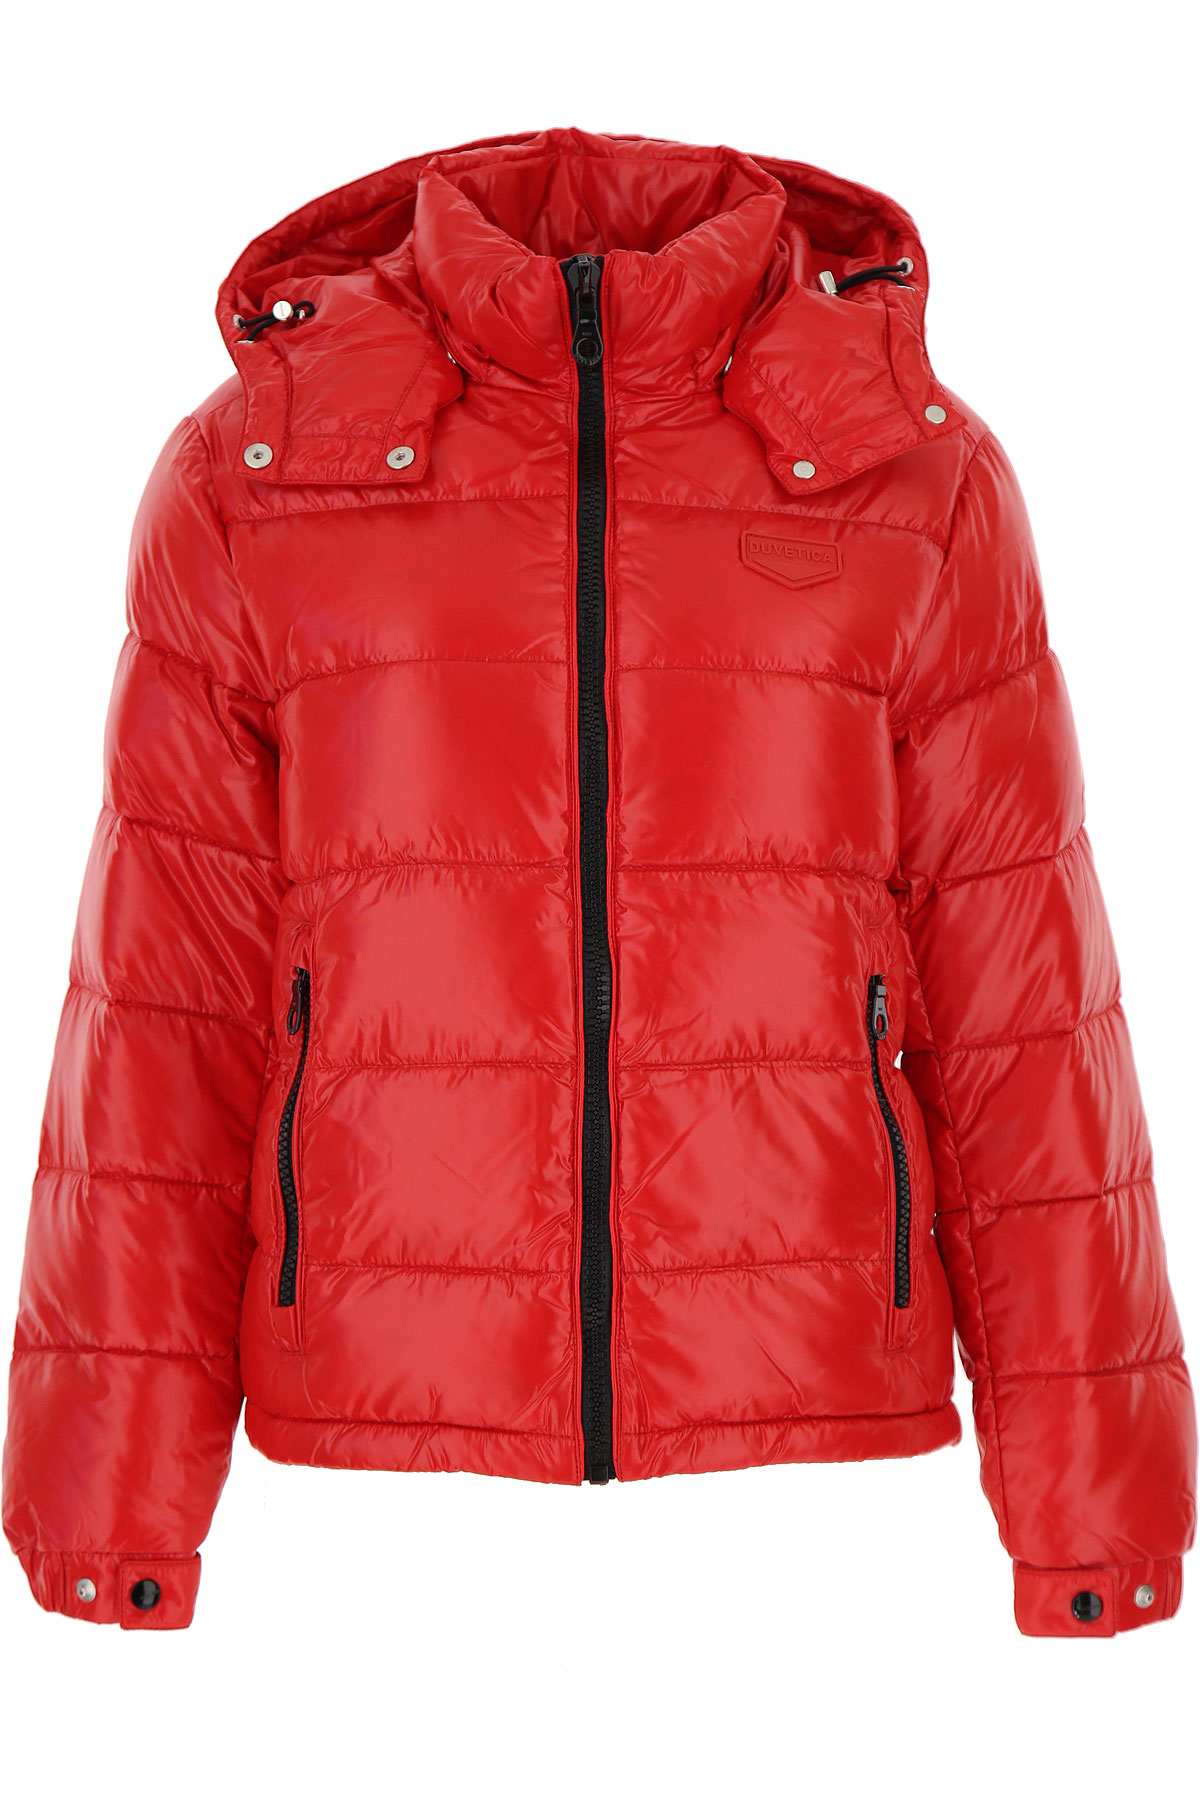 Duvetica Down Jacket for Women, Puffer Ski Jacket On Sale, Scarlet Red, Down, 2019, 4 6